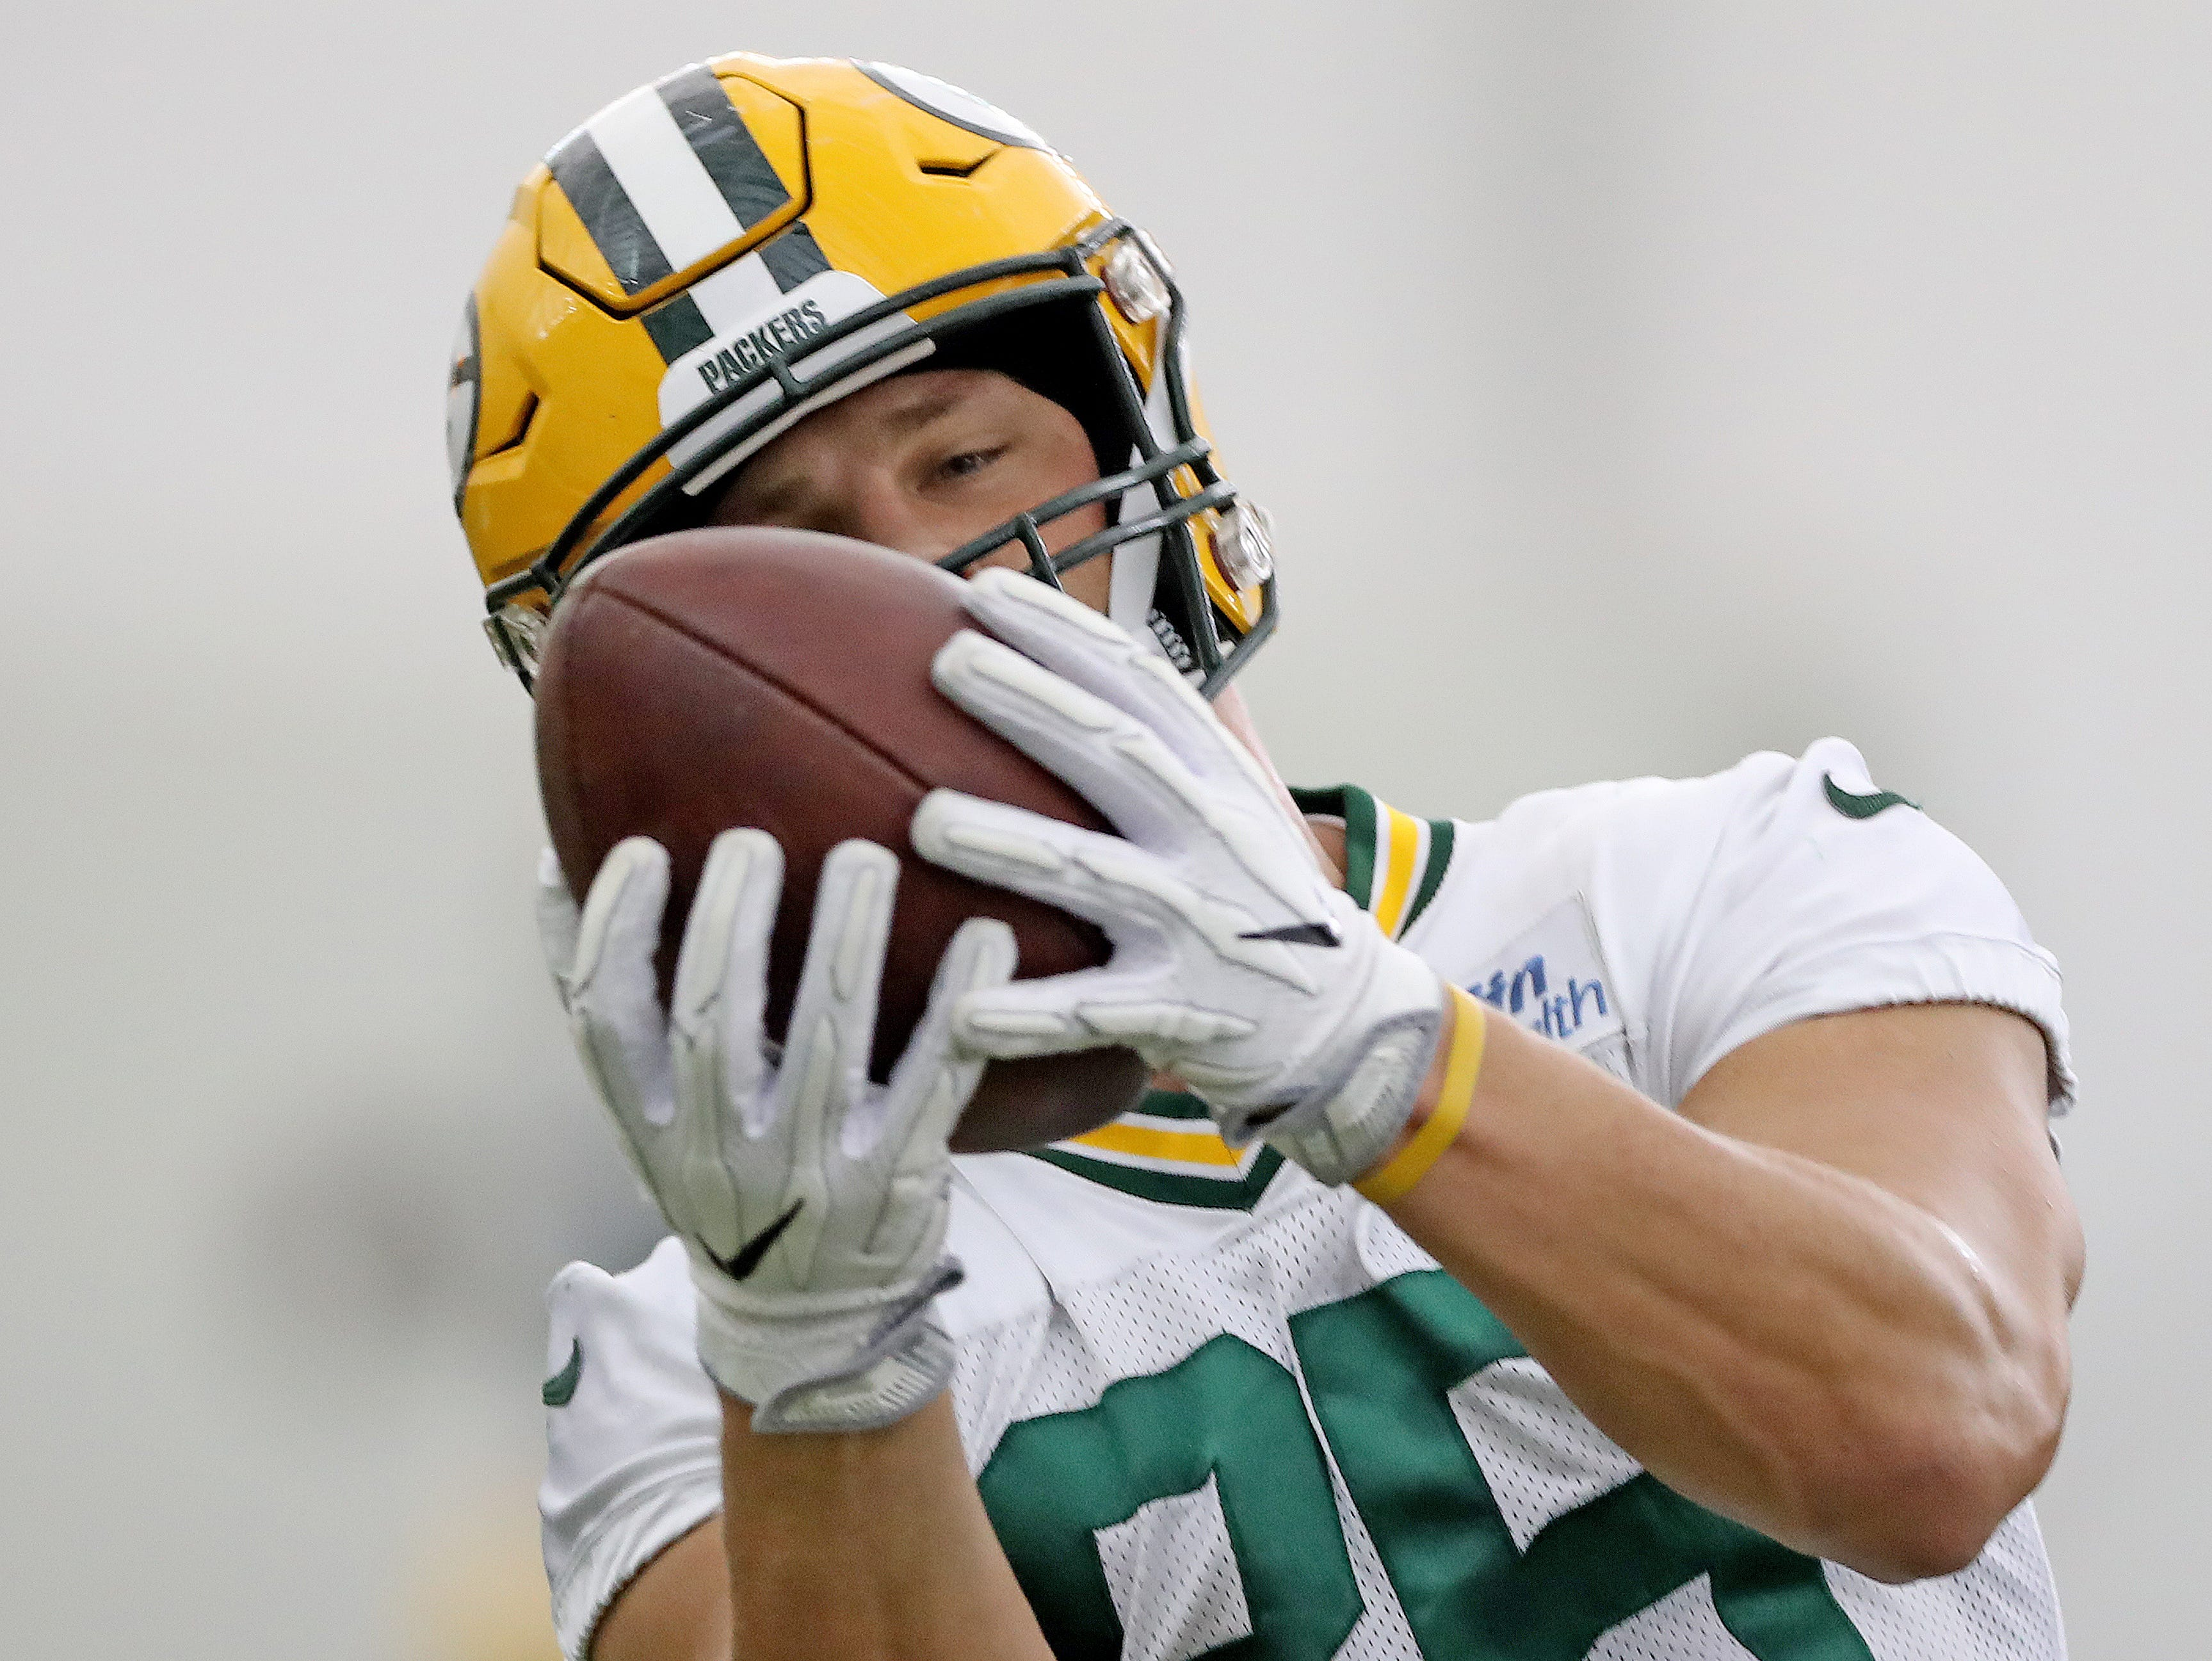 Green Bay Packers wide receiver Robert Tonyan (85) during Packers practice in the Don Hutson Center Monday, September 3, 2018 in Ashwaubenon, Wis